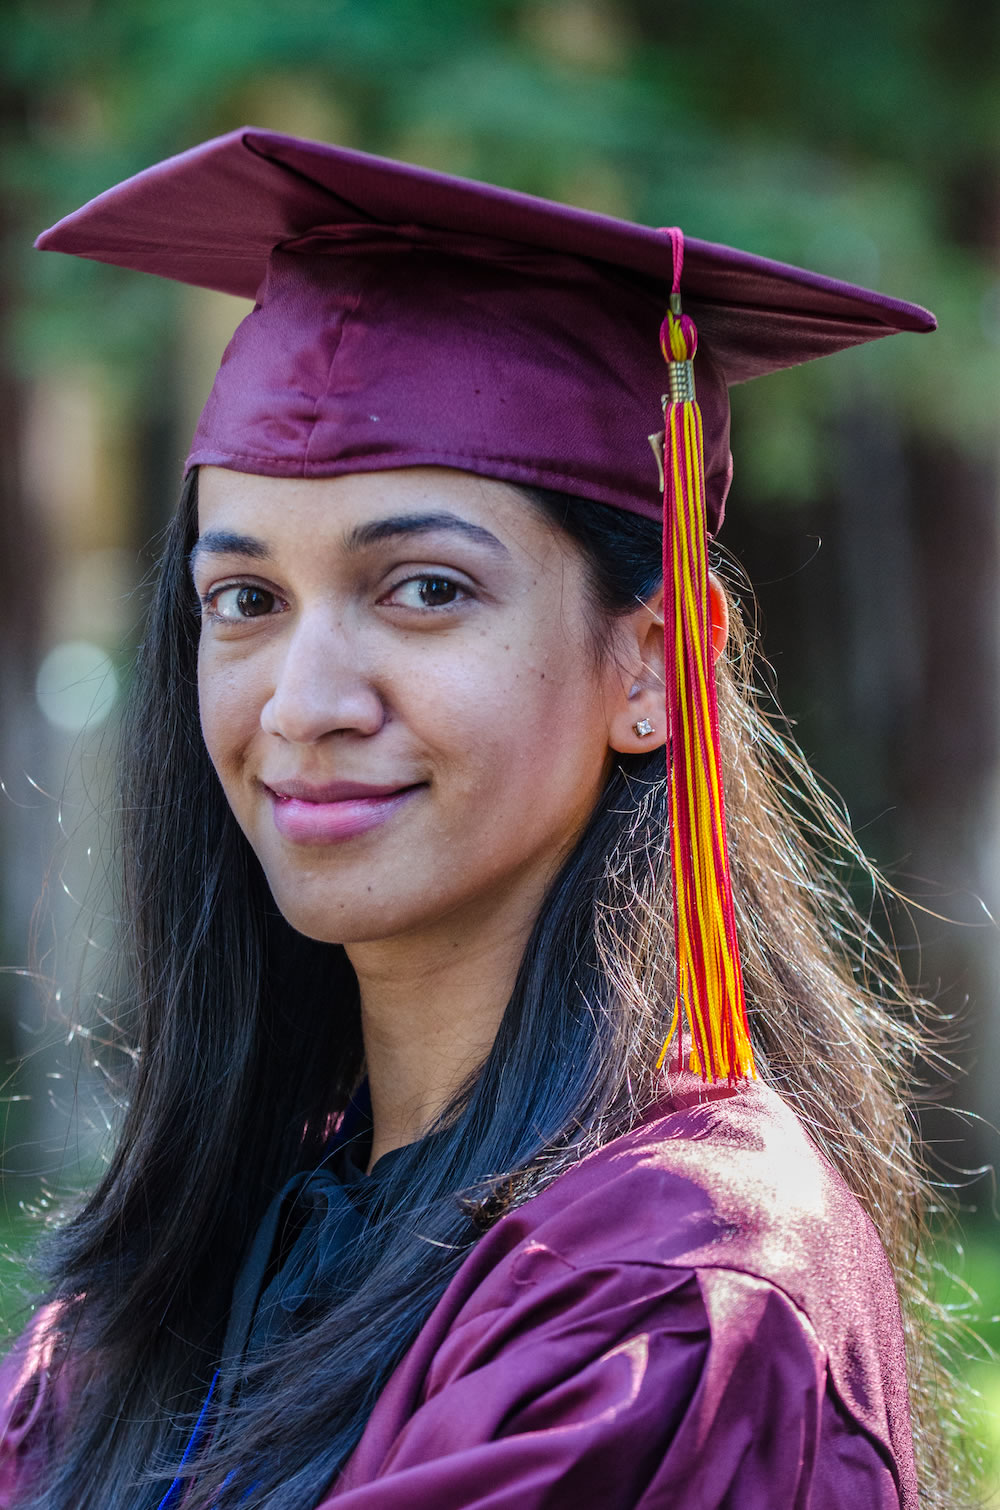 Young Woman in Graduation attire